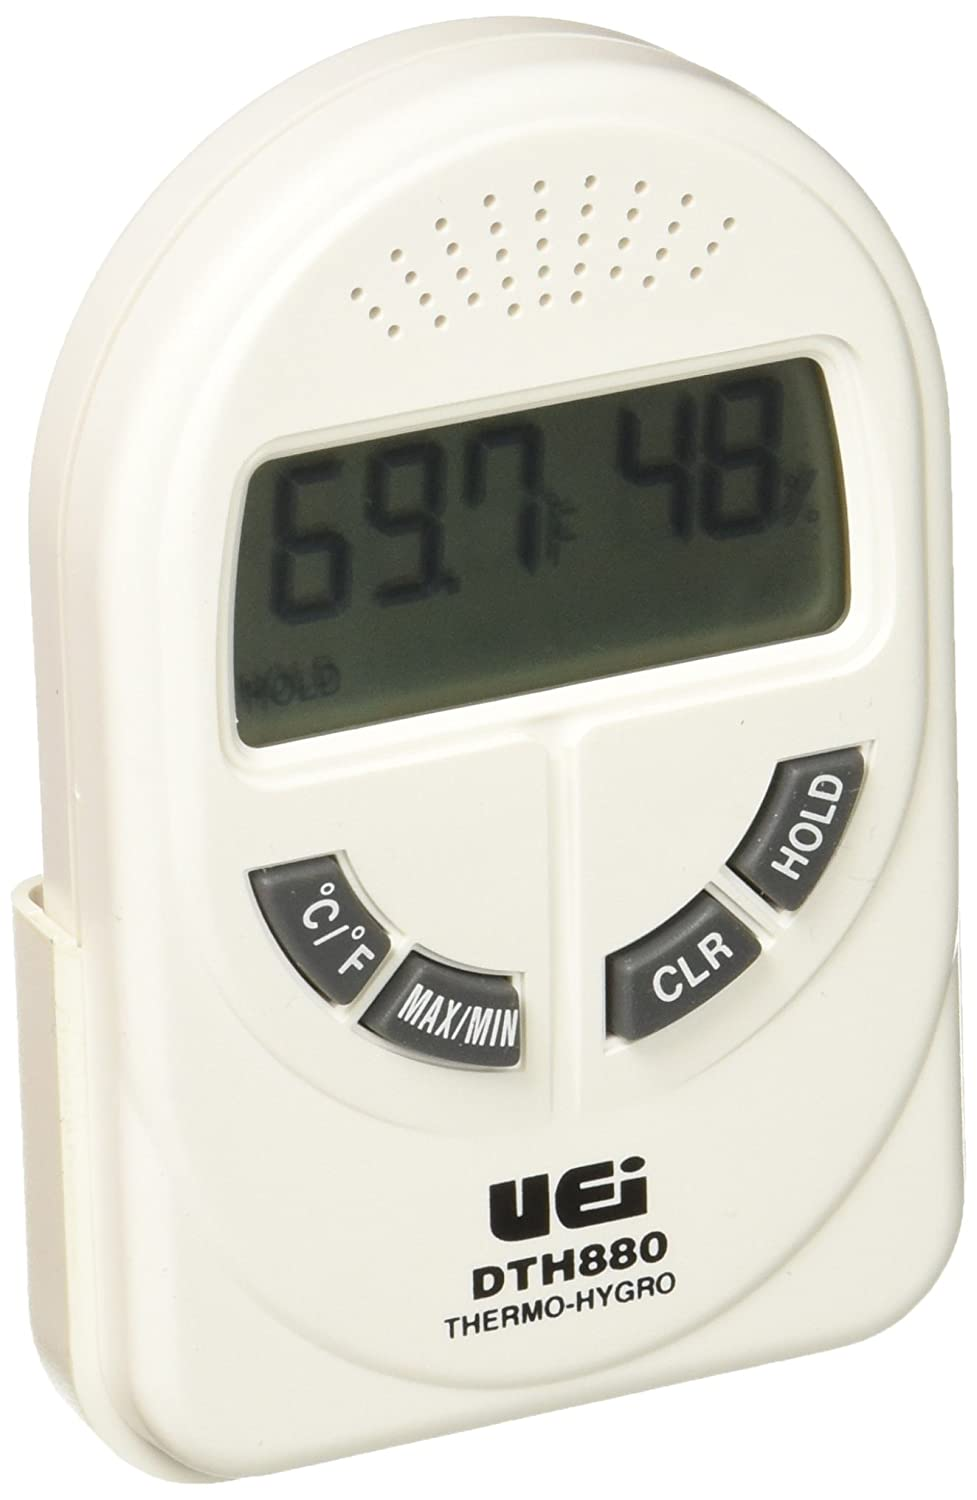 Universal Enterprises DTH880 Wall Mounted Temperature and Humidity Tester UEi Test Instruments